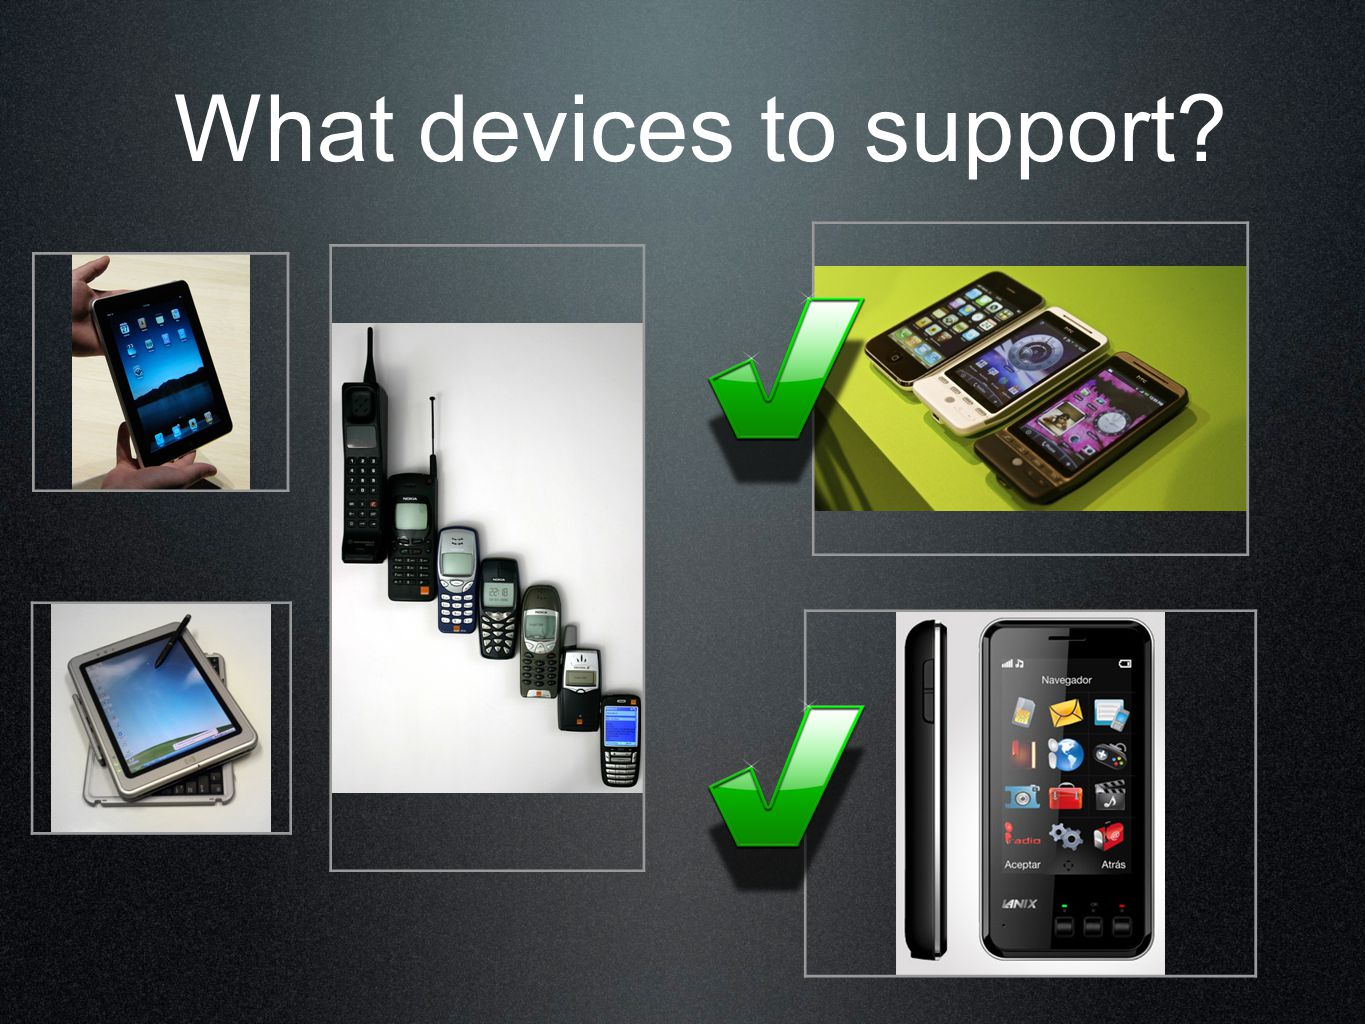 What devices to support